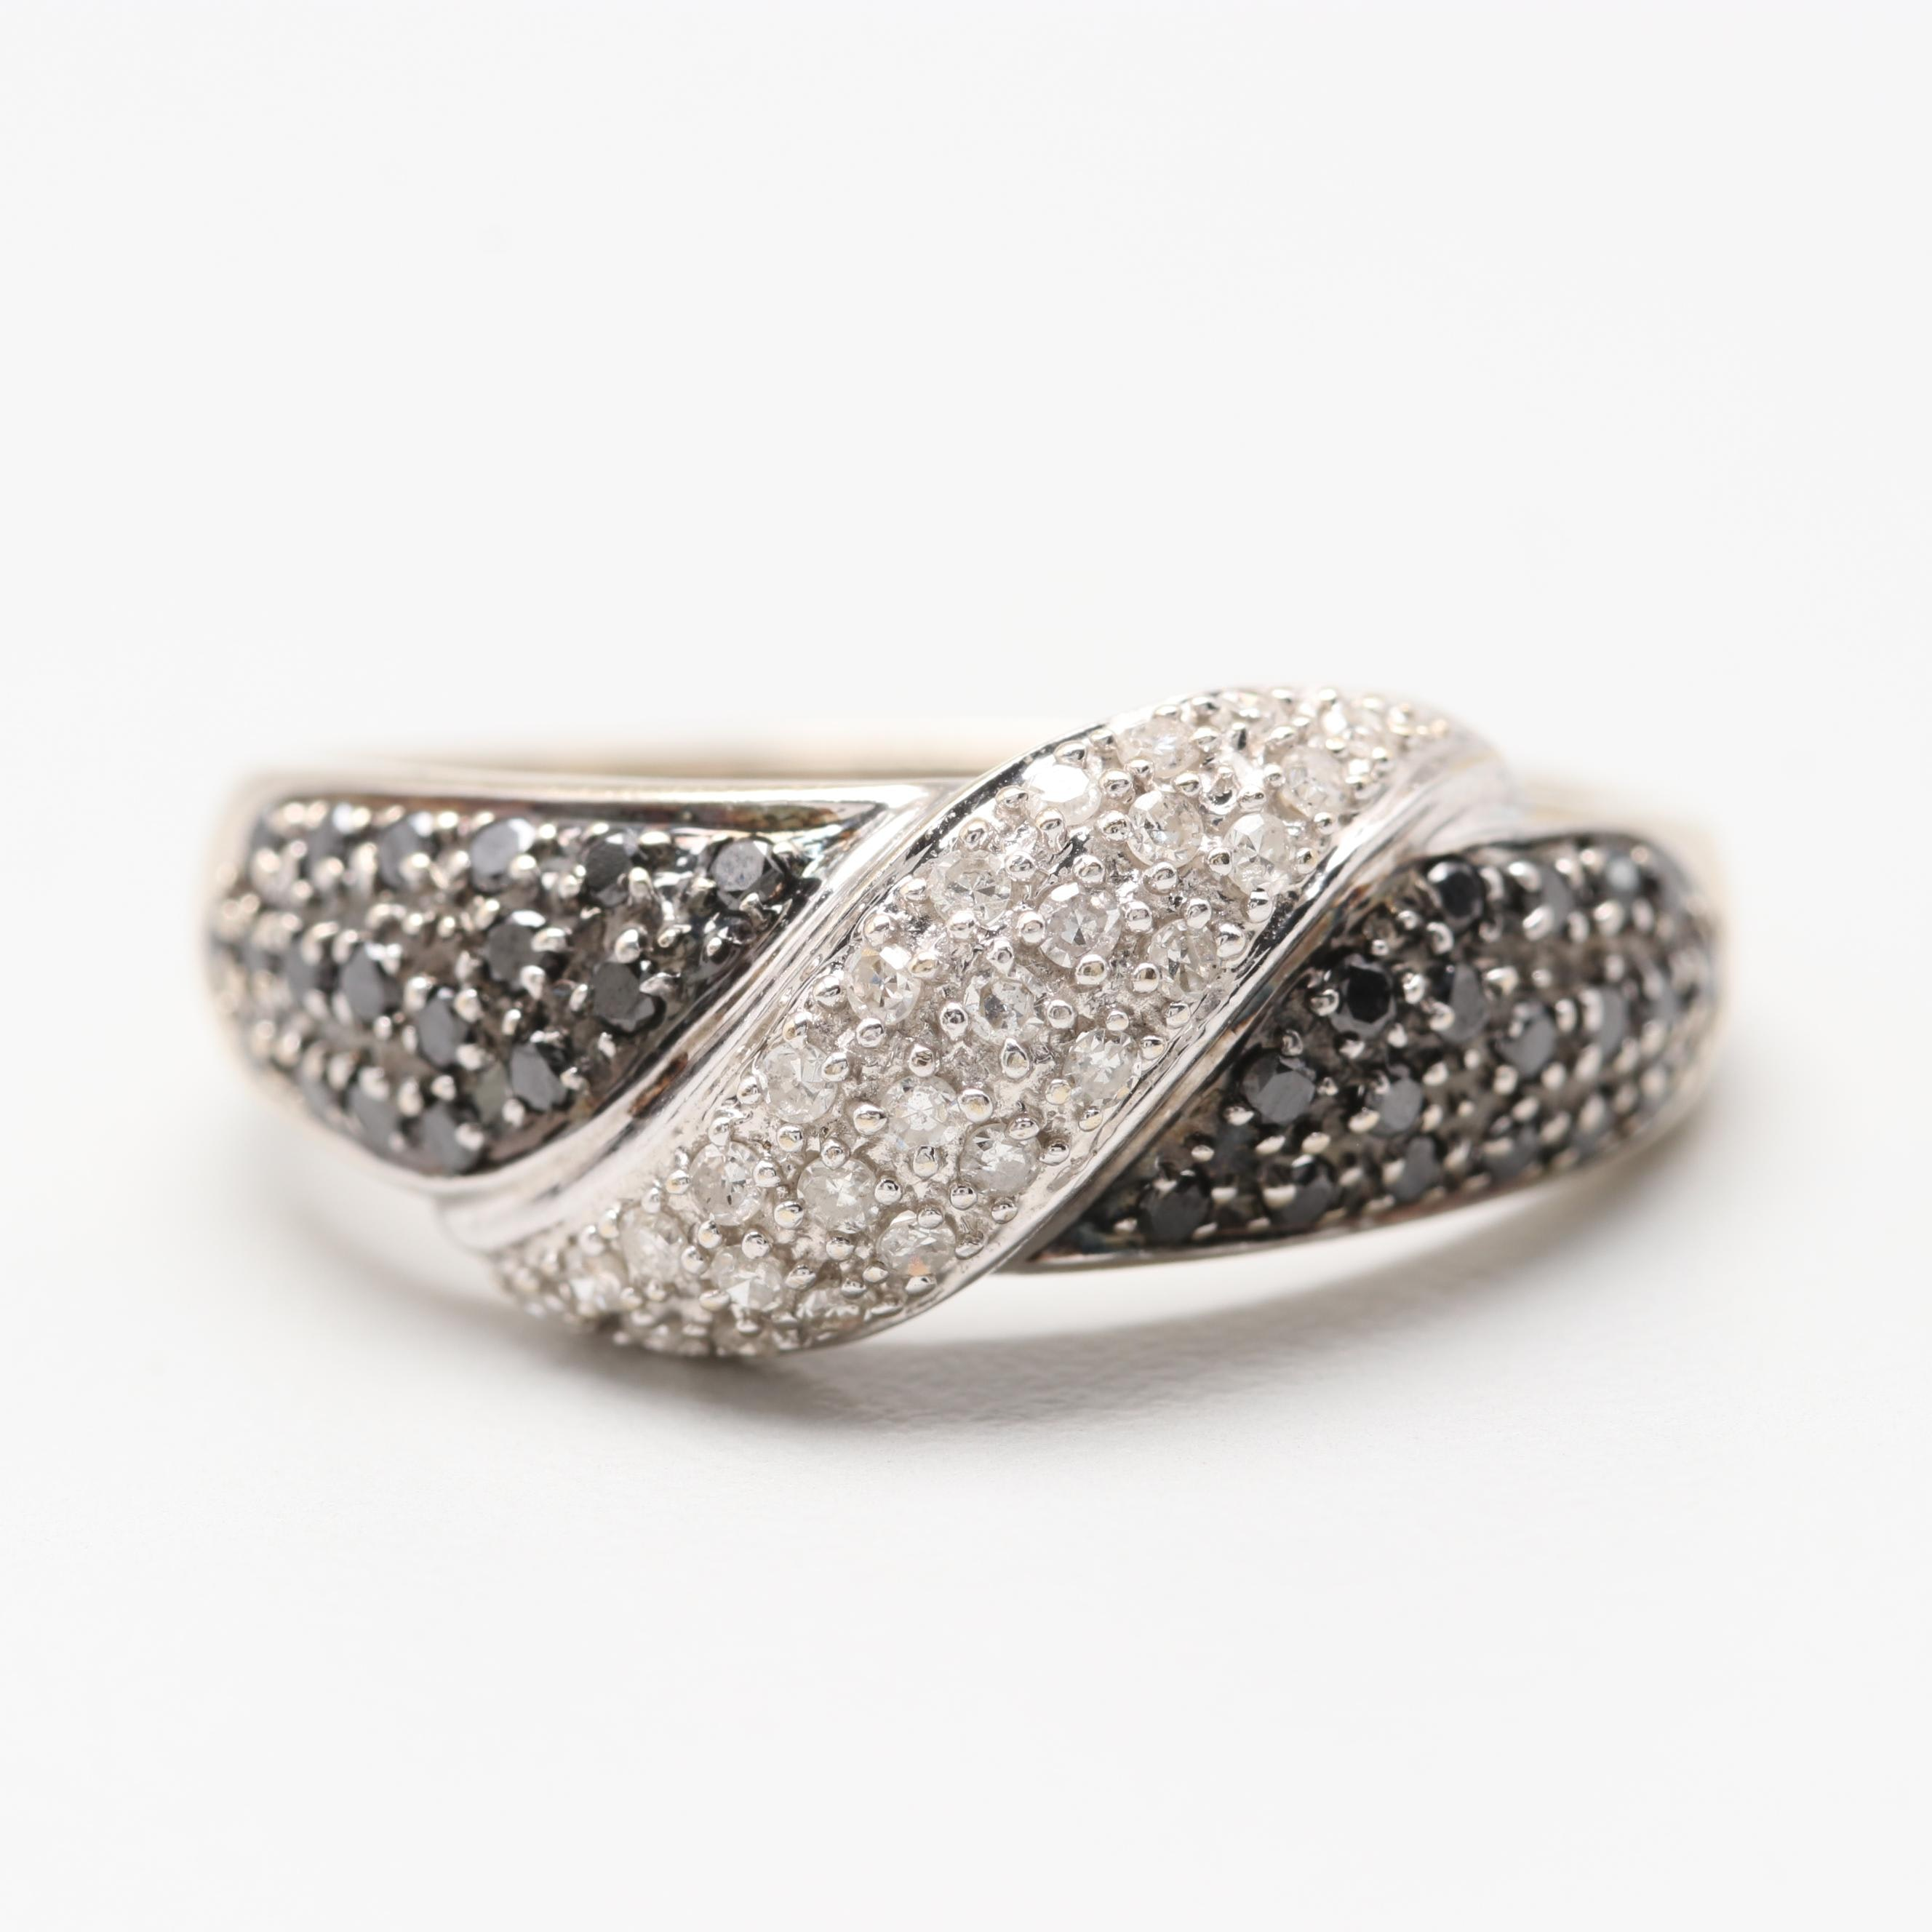 Alwand Vahan 14K Yellow Gold Diamond Ring with White Gold Accents